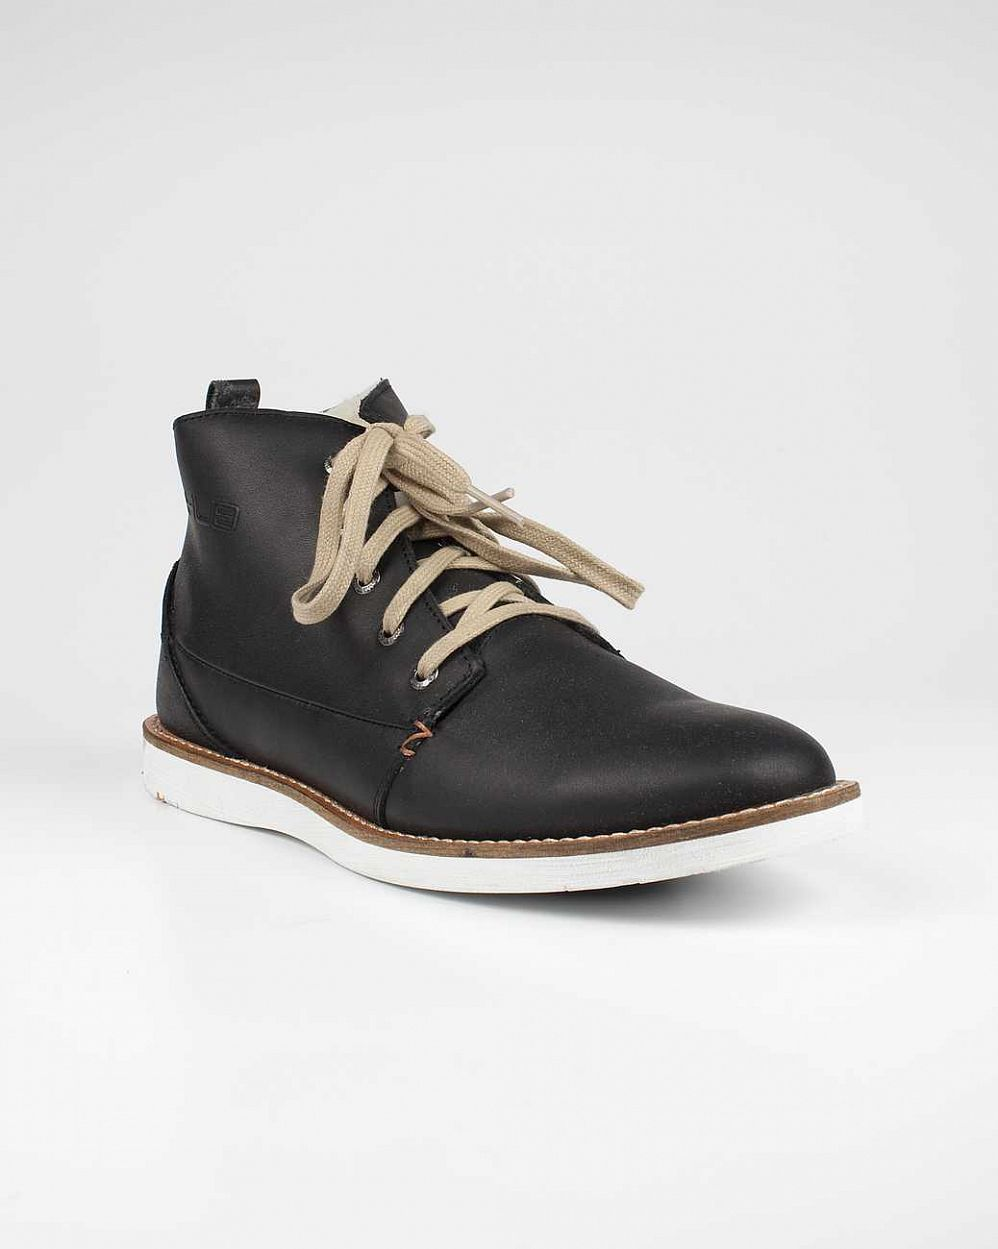 купить Ботинки Hubfootwear Jag Wool Leather not tumbl Black White в Москве